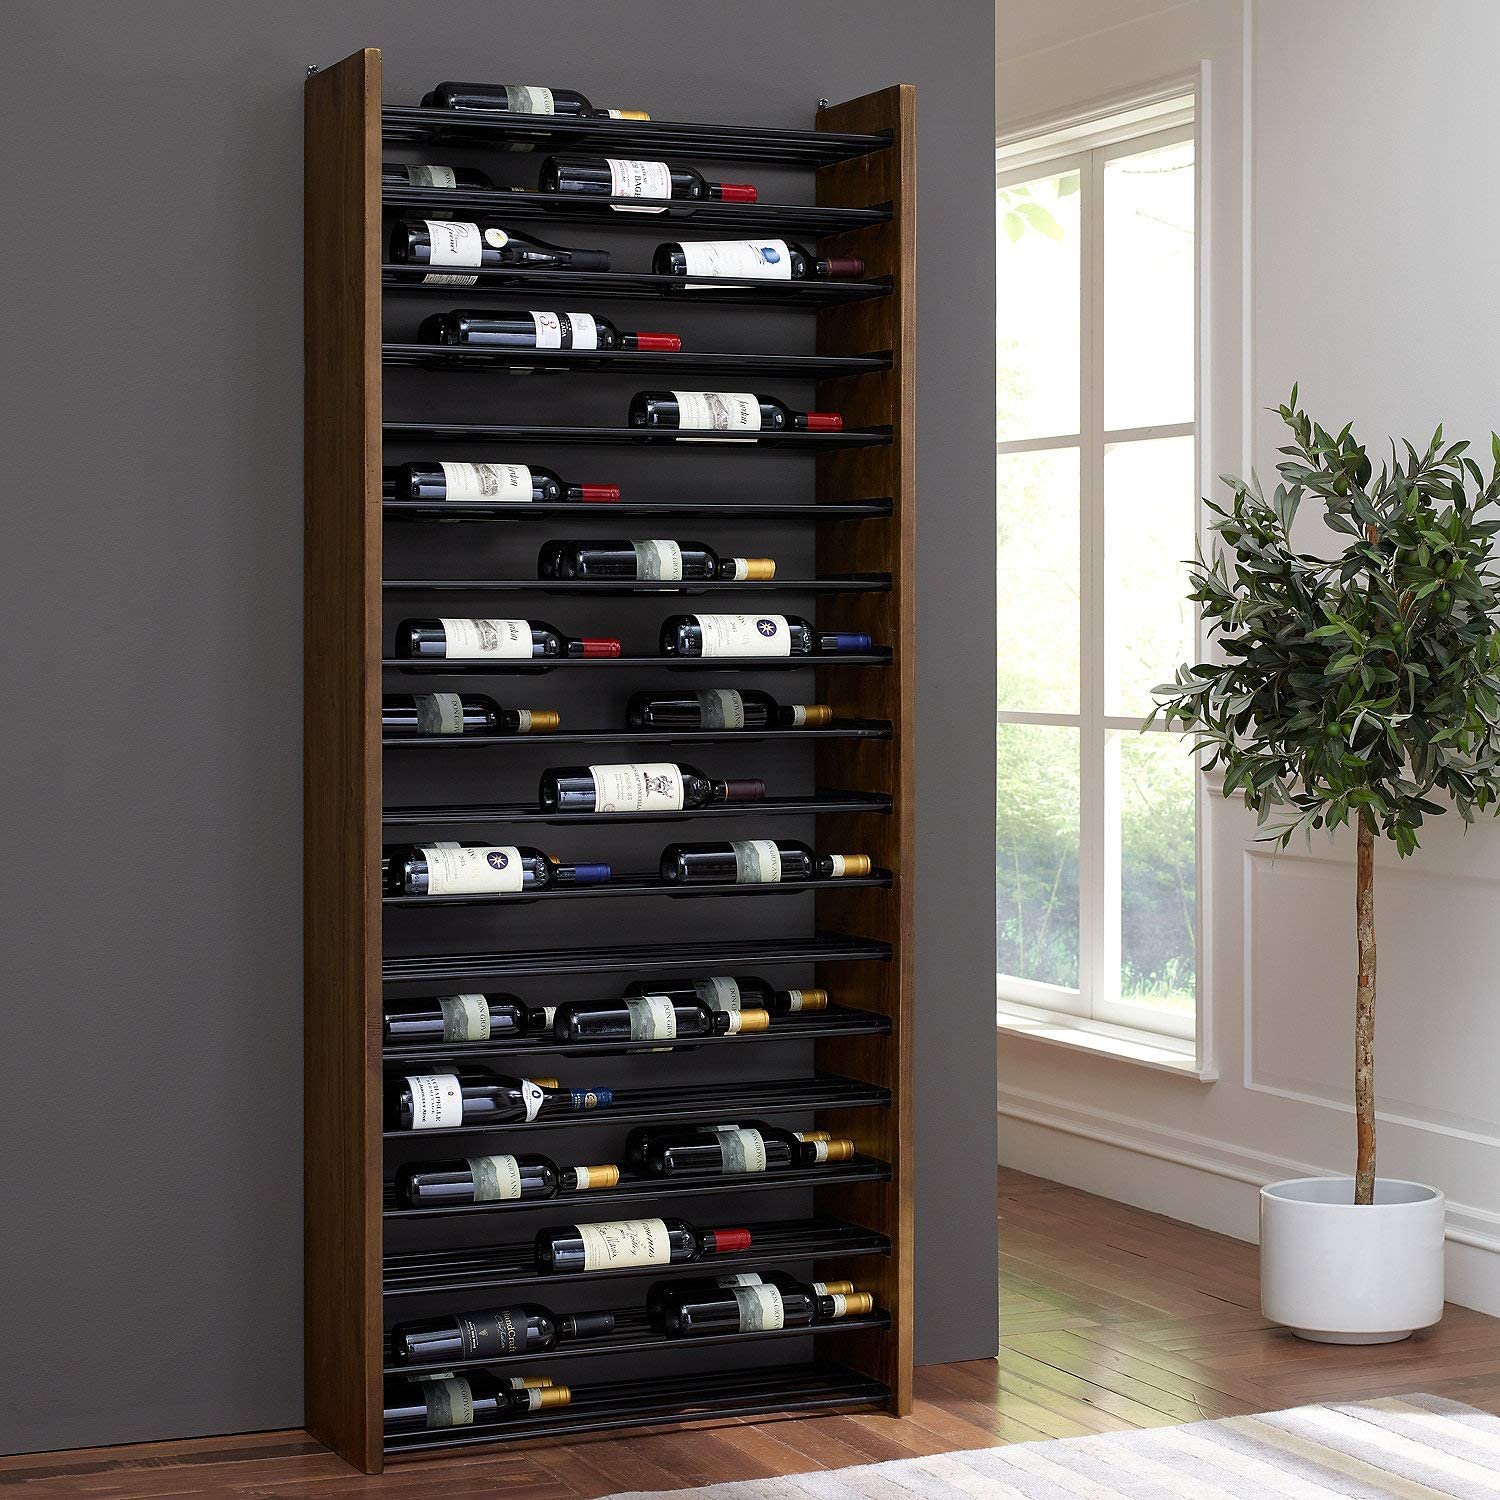 Corsica Triple Depth Vertical Wood Wine shopping famous Rack Metal and